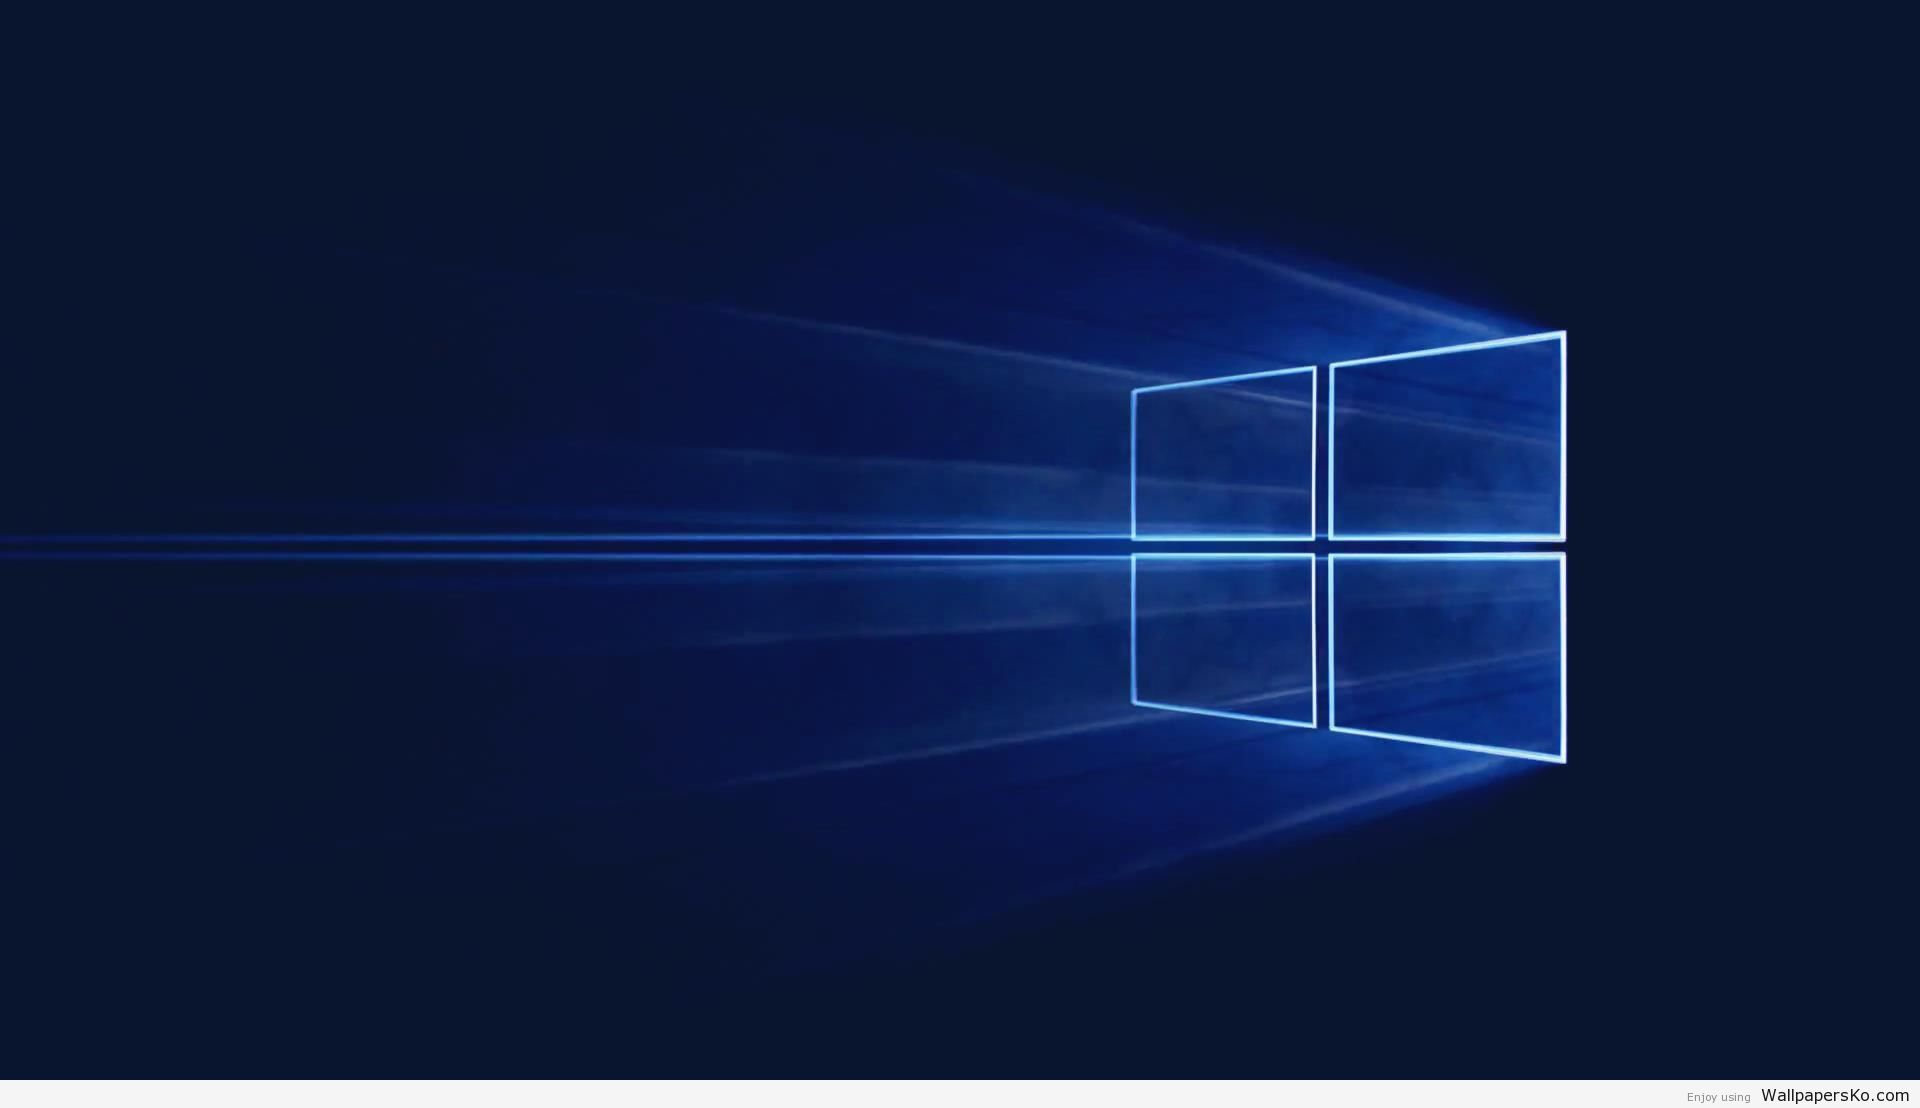 Windows 10 Desktop Background Http Wallpapersko Com Windows 10 Desktop Background Htm Wallpaper Windows 10 Windows Wallpaper Windows 10 Desktop Backgrounds